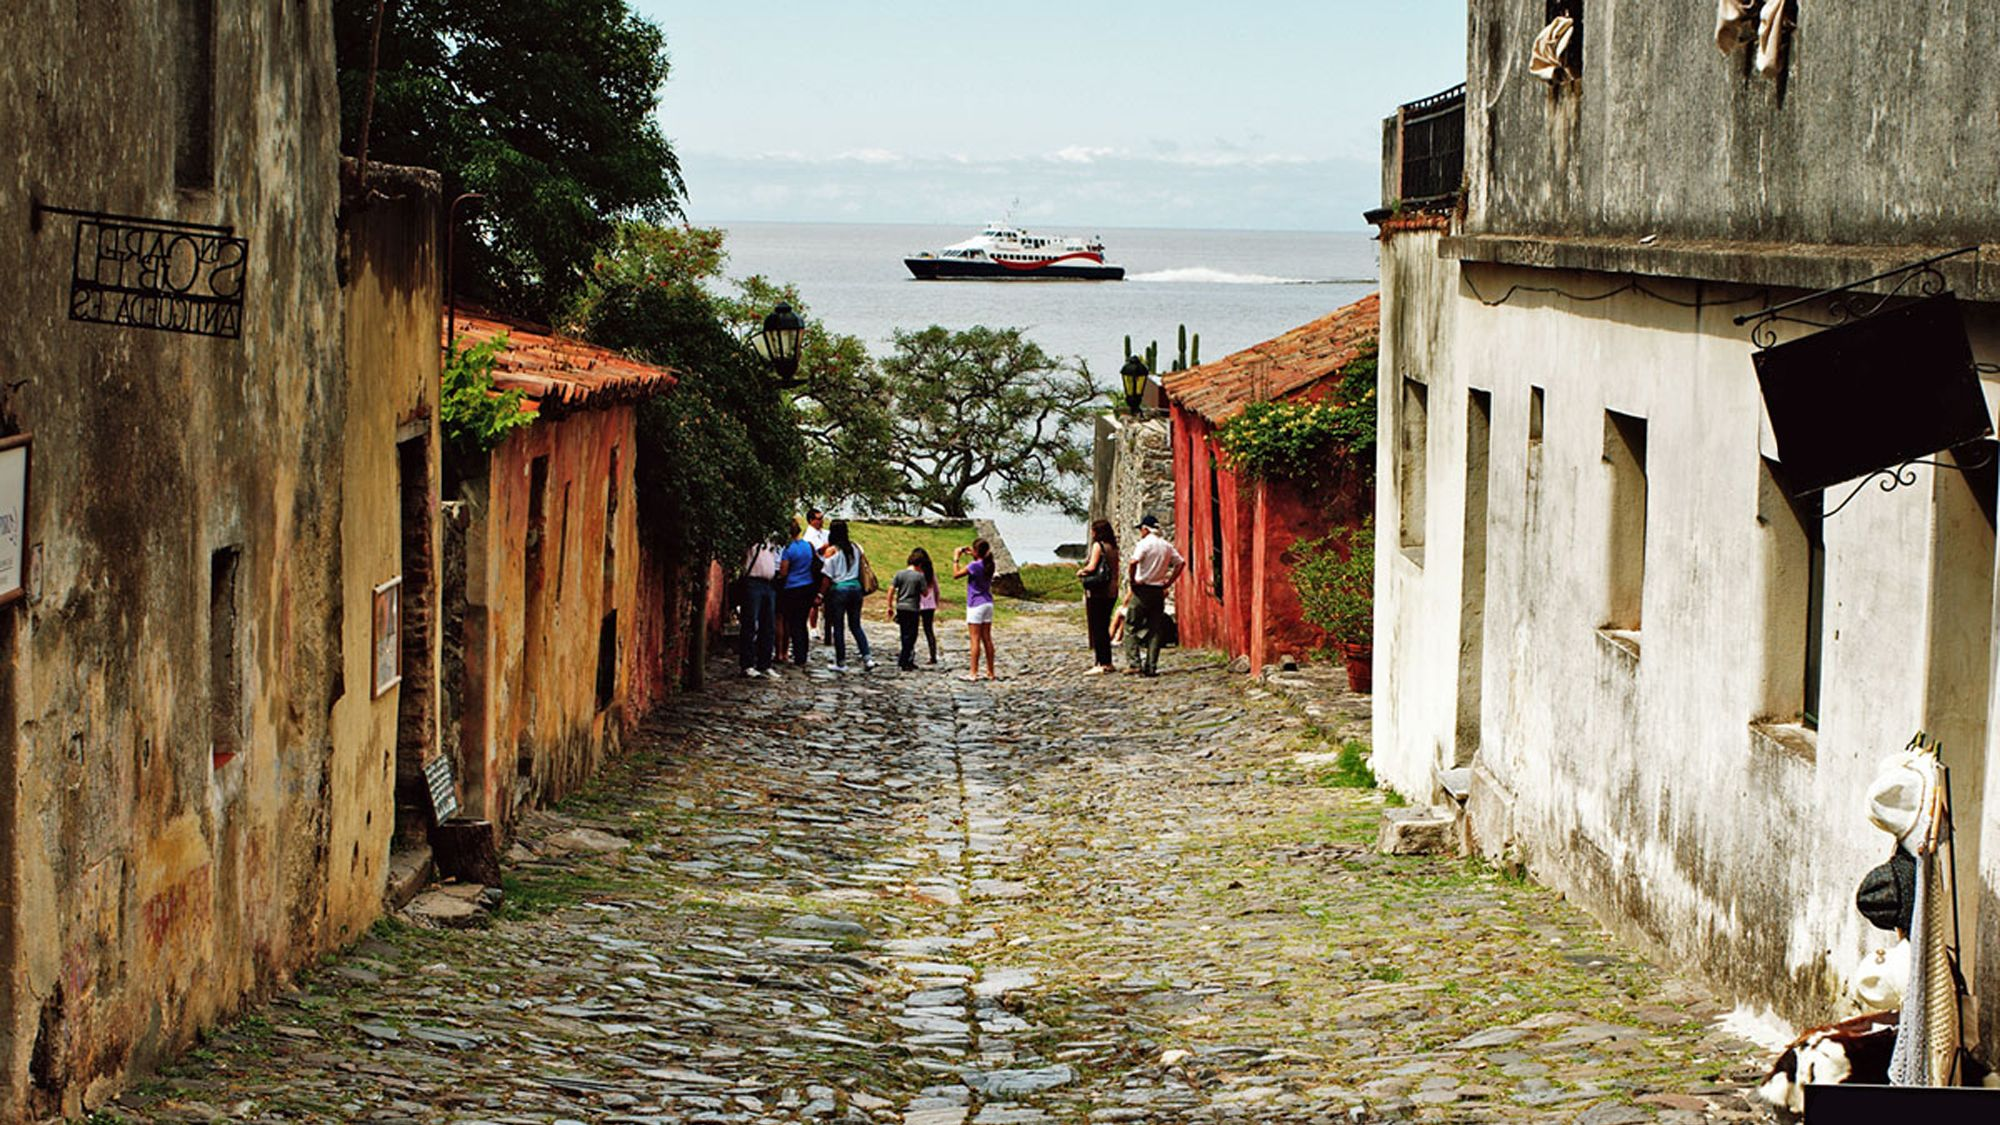 Day view of the streets seen on the Colonia City Day Tour